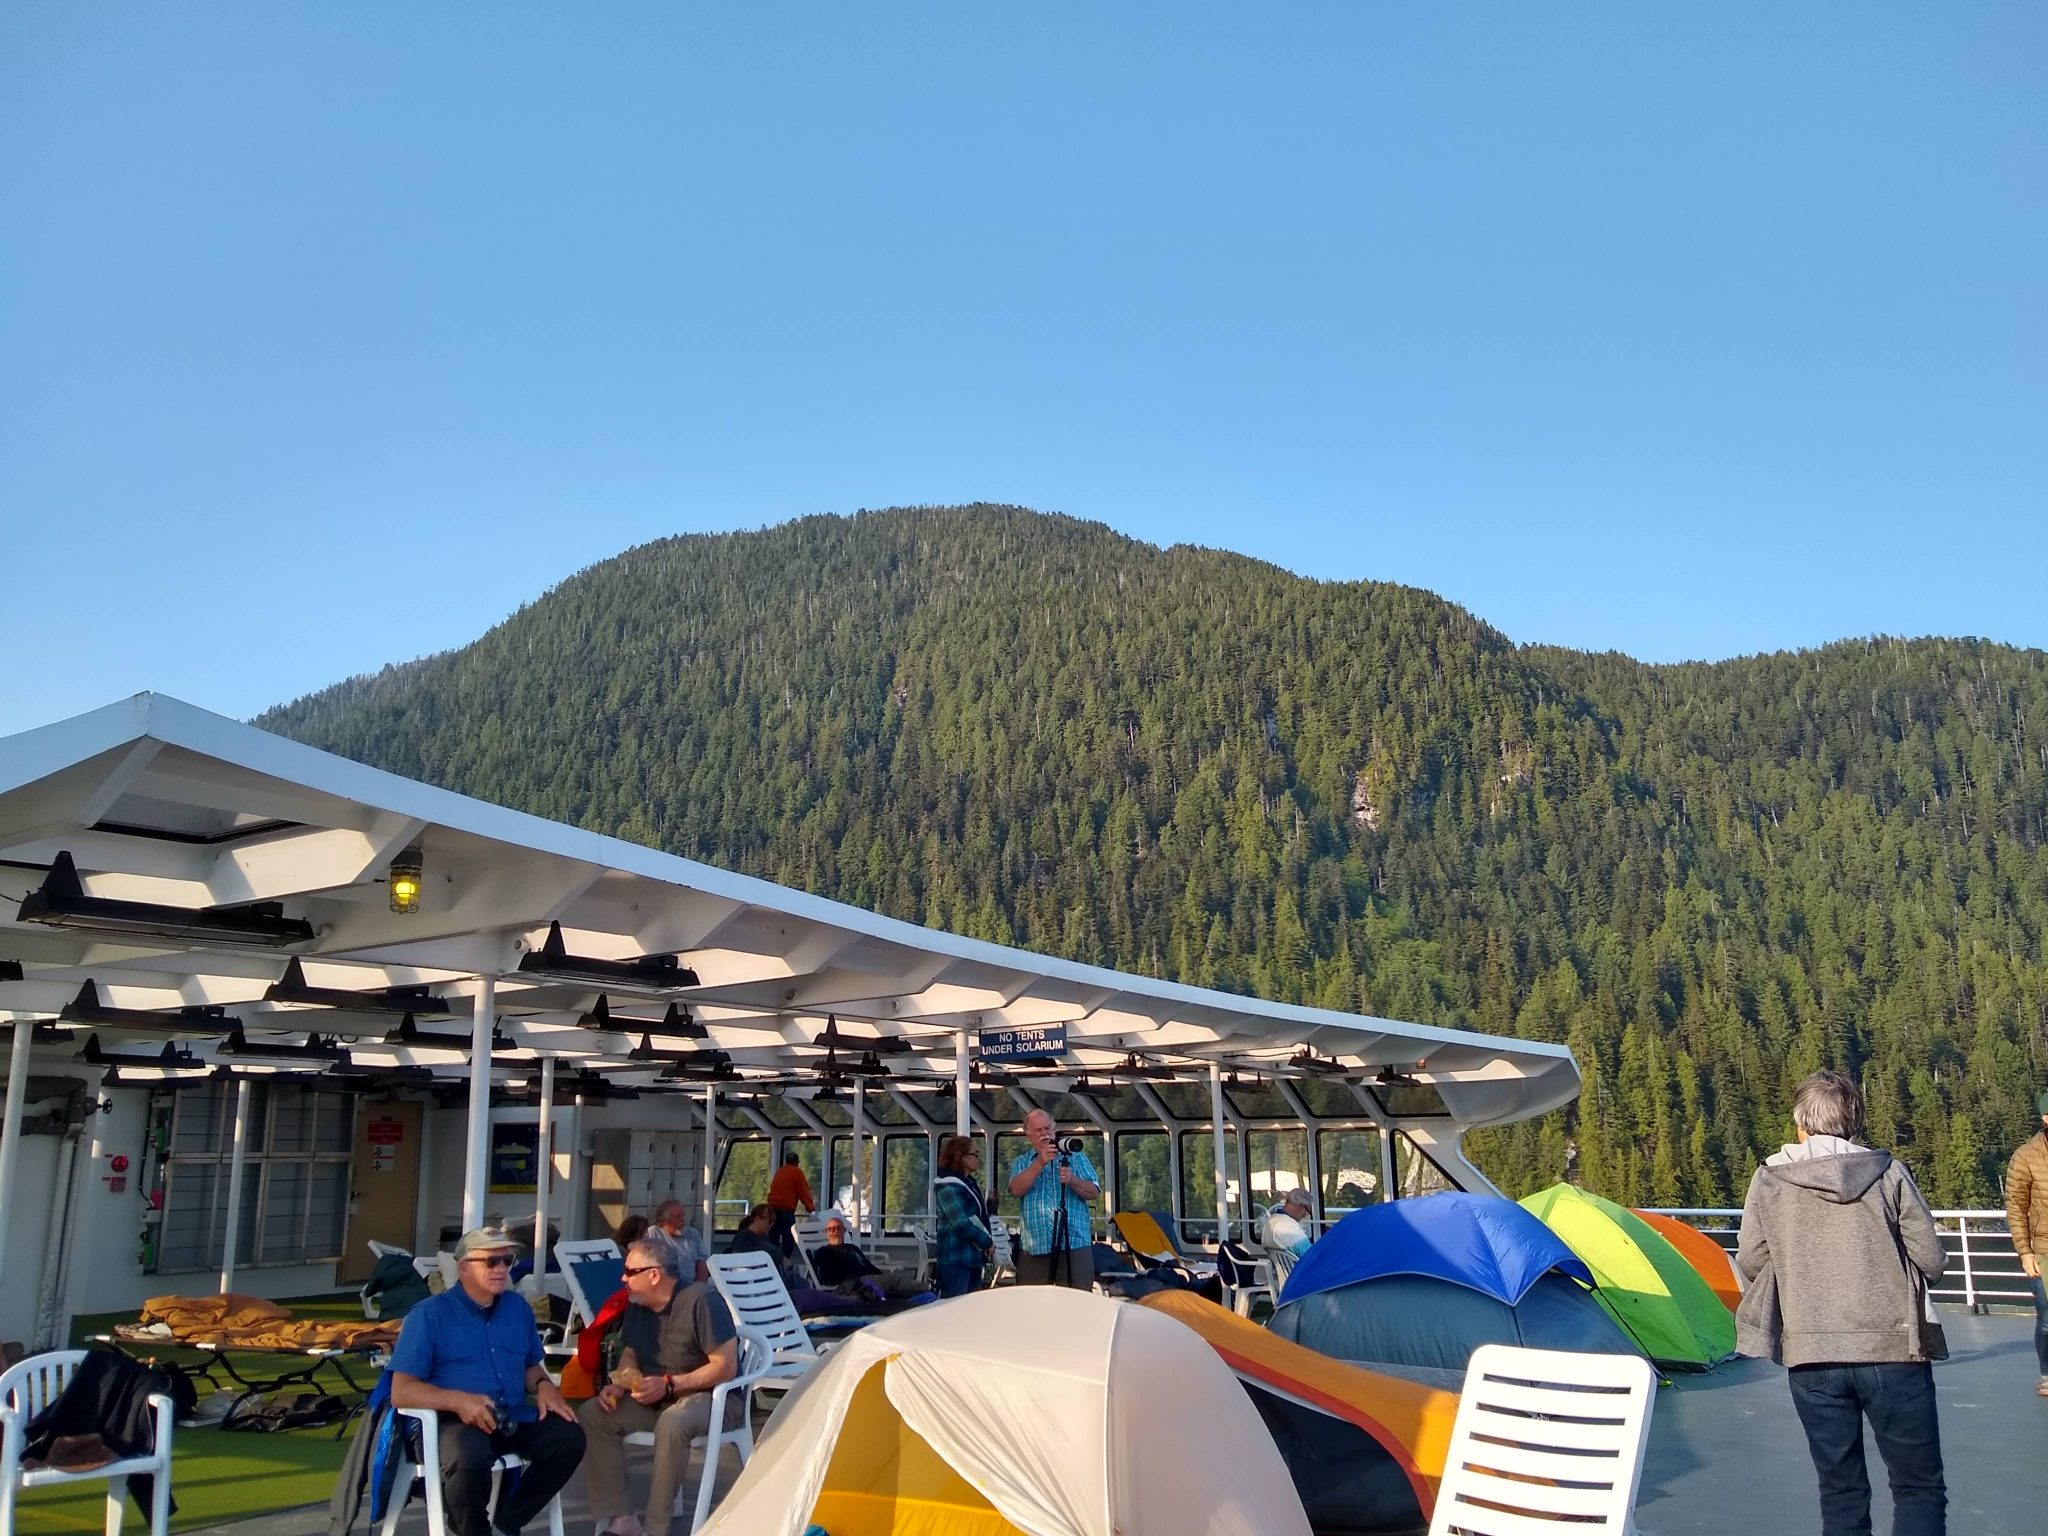 People on the top deck of the Alaska ferry. There are tents on the deck and sleeping bags under the solarium. The ferry is passing close to a forested hillside on a sunny day.